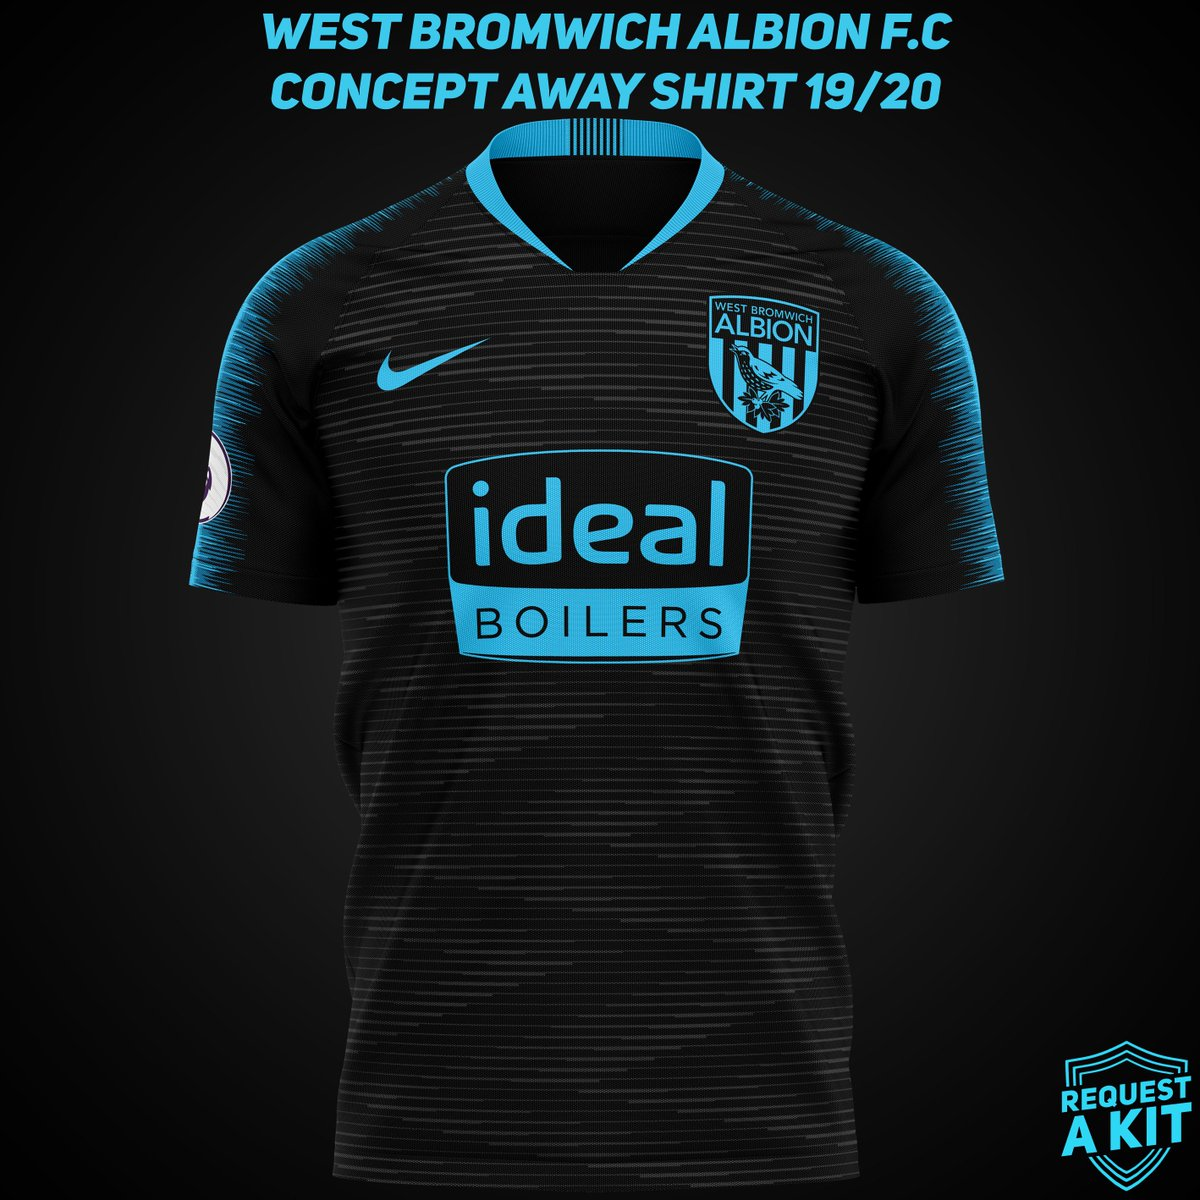 Request A Kit On Twitter West Bromwich Albion Concept Nike Home Away And Third Shirts 2019 20 Requested By Fmbase Westbrom Wba Baggies Hawthorns Wbafc Albion Westbromwichalbion Fm19 Wearethecommunity Download For Your Football